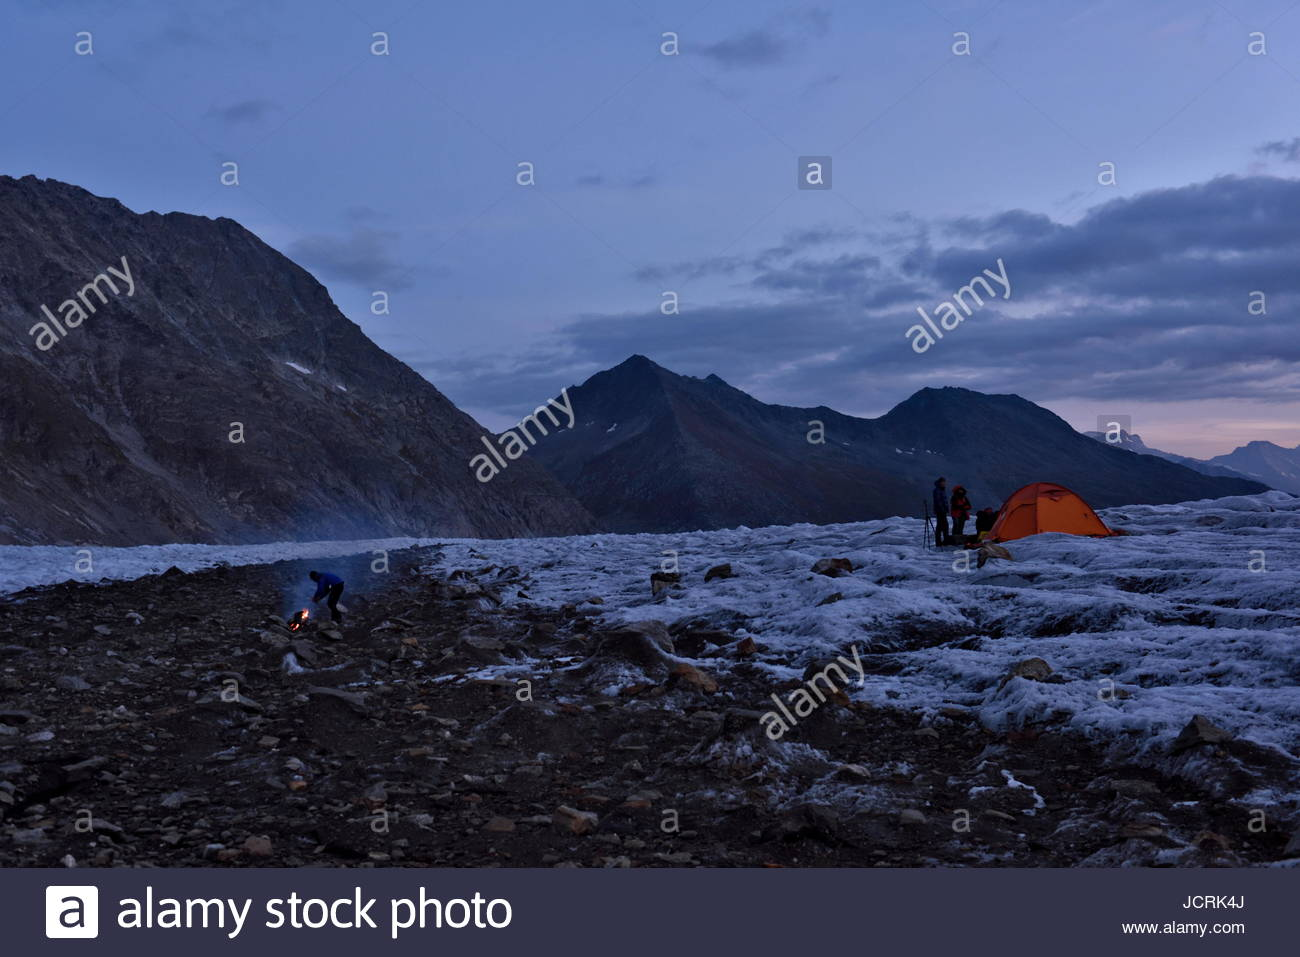 The team of Italian cave explorers settle into the evening at their base camp on the Aletschgletscher. Warm twilight - Stock Image